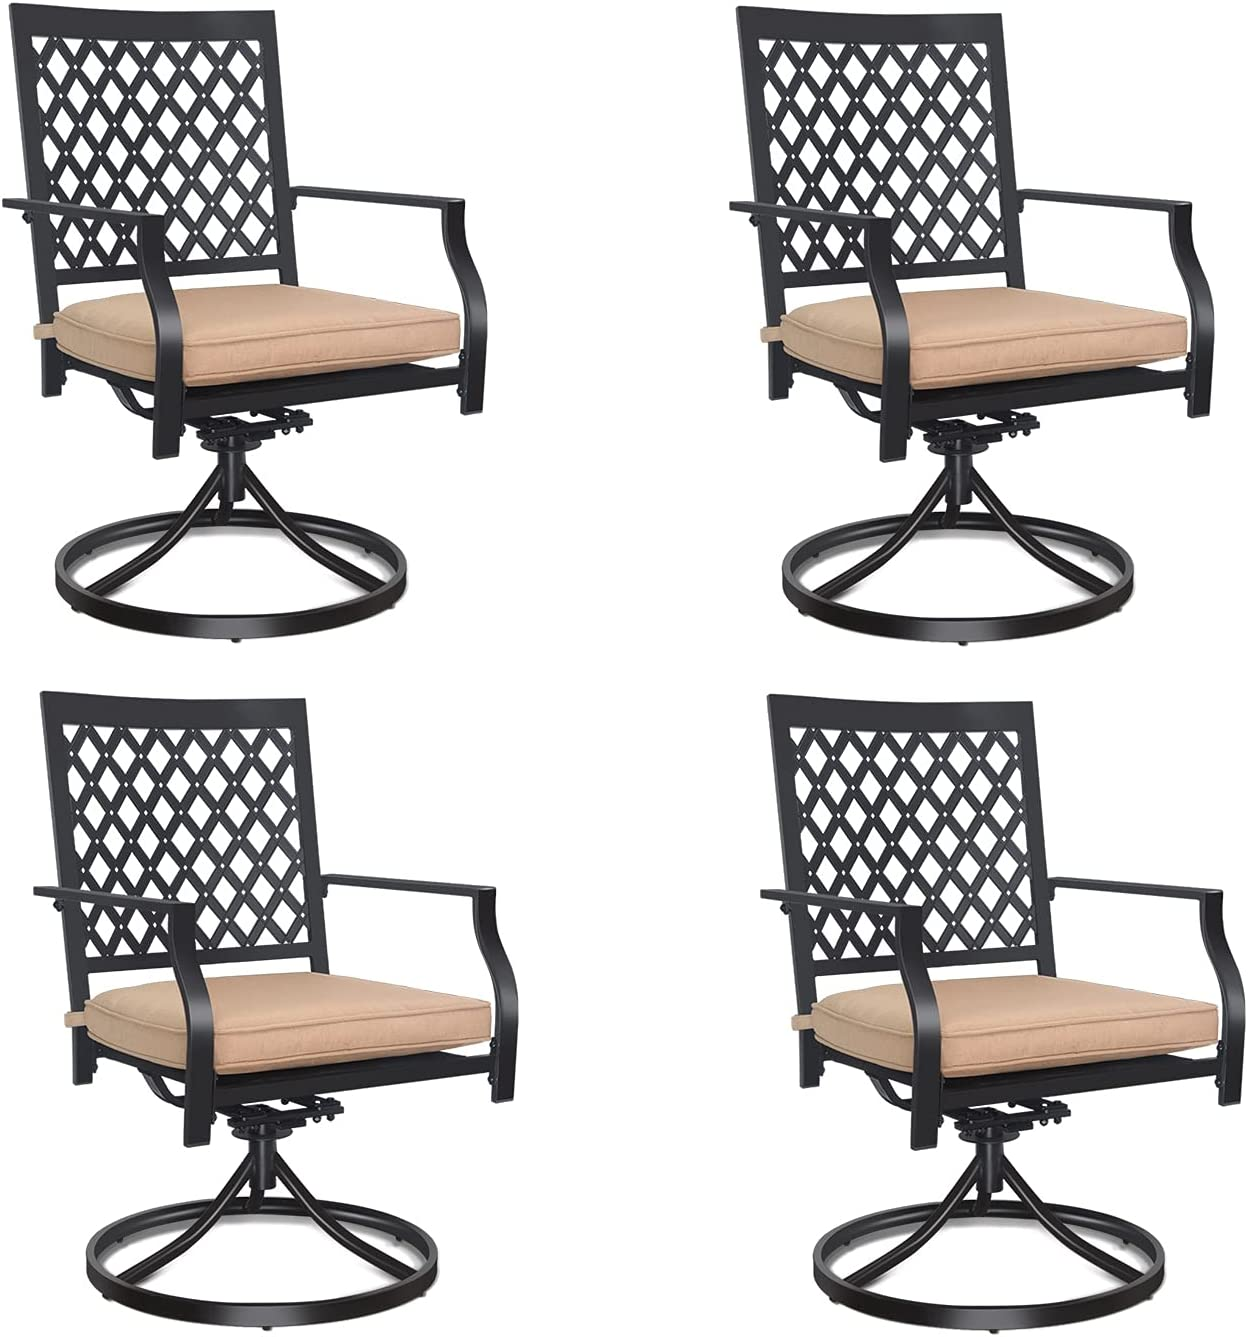 Swivel Patio Chairs Free shipping anywhere in the nation 4 Pcs MEOOEM Max 81% OFF Metal Ch Dining Outdoor Rocker